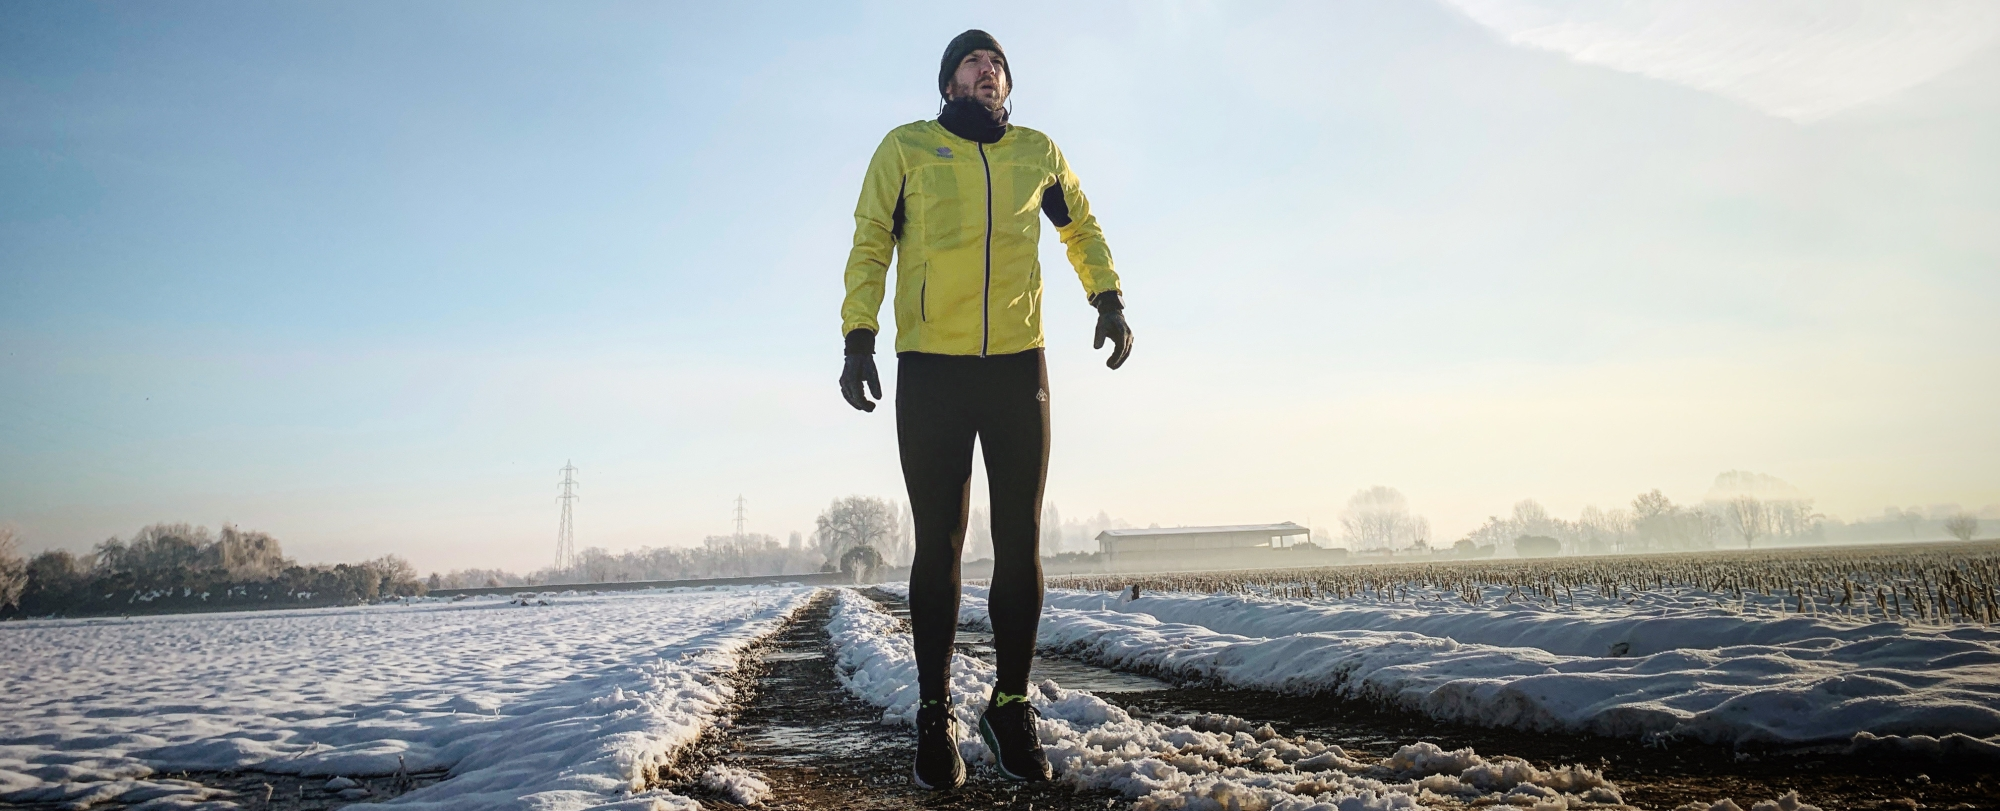 Runner Extralarge nella neve